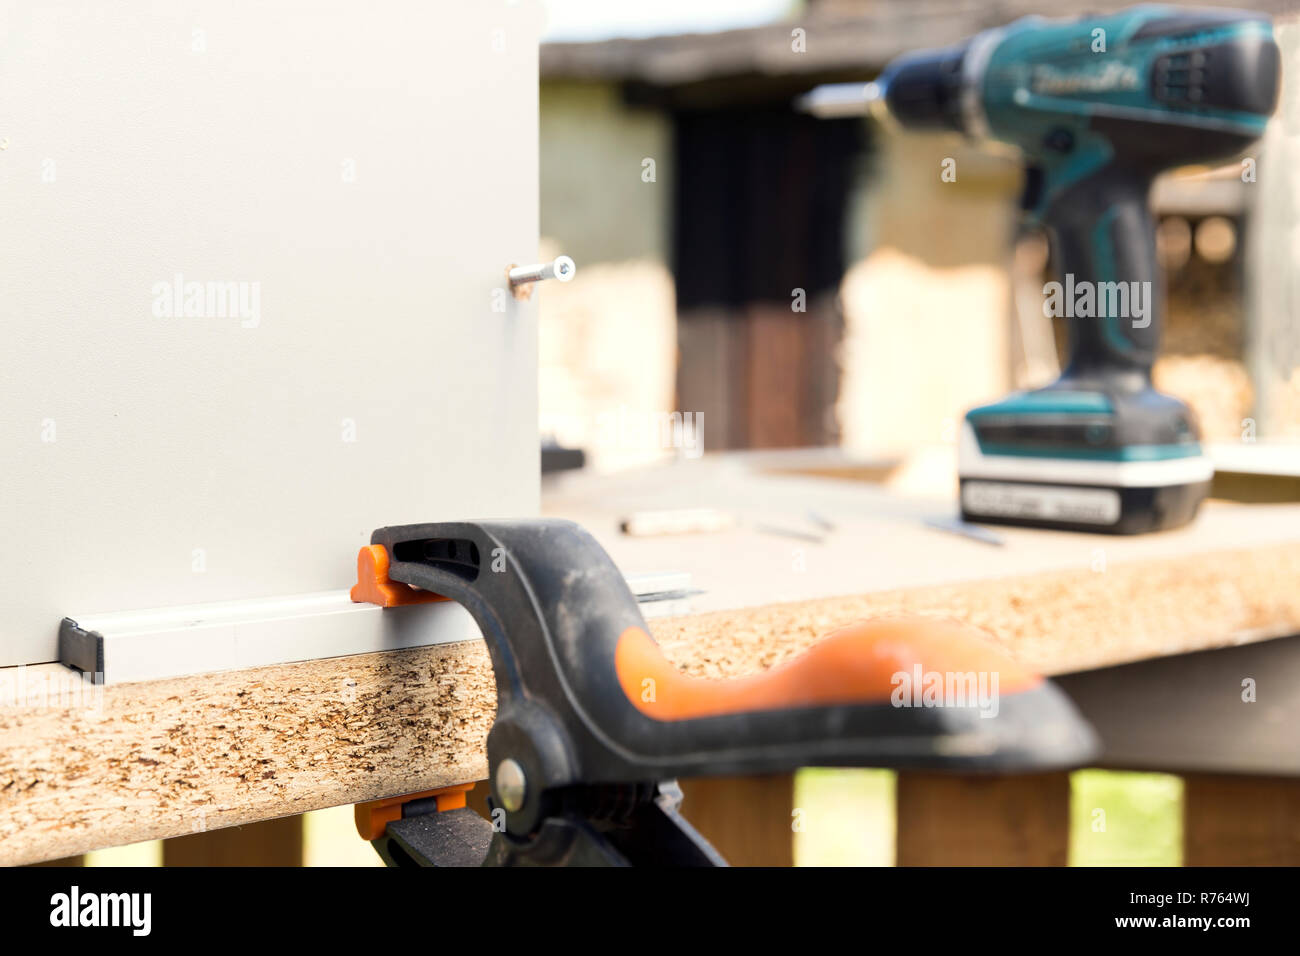 Furniture Assembly Making Of Kitchen Cabinet Using Screwdriver